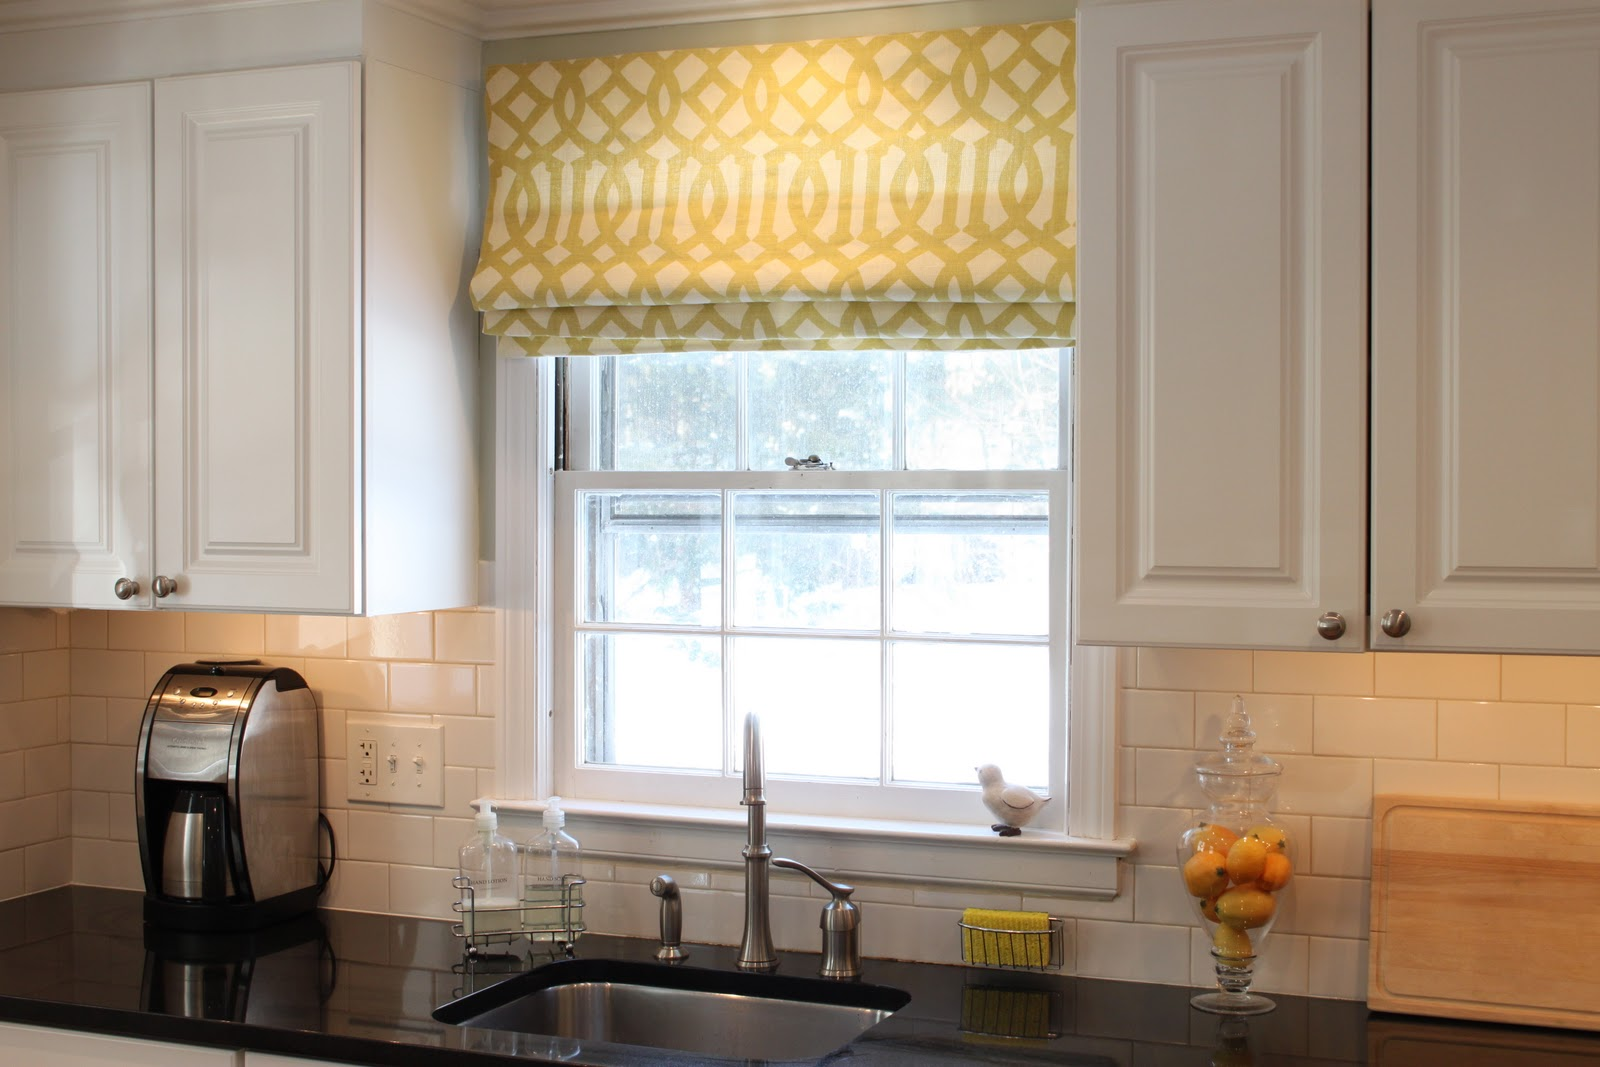 Installing Outside Mount Roman Shades at Ease | HomesFeed